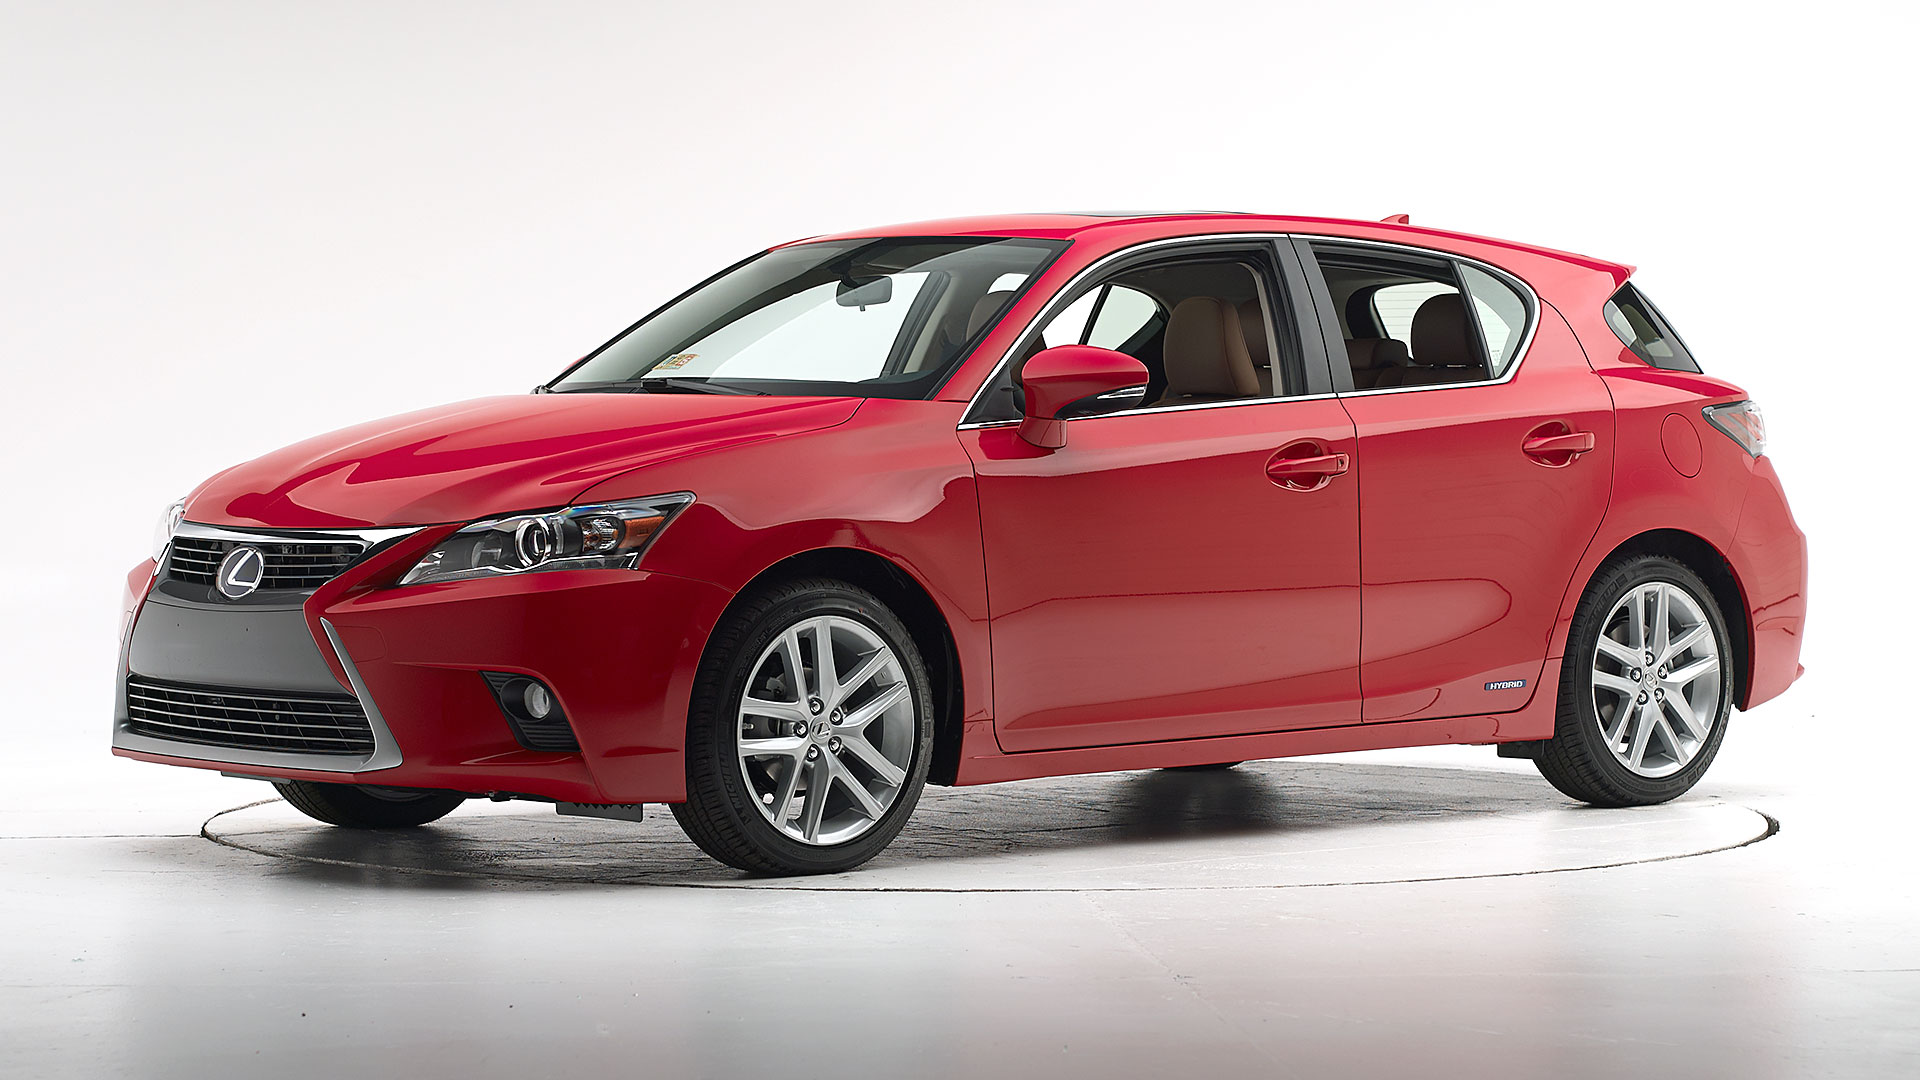 2016 Lexus CT 200h 4-door hatchback